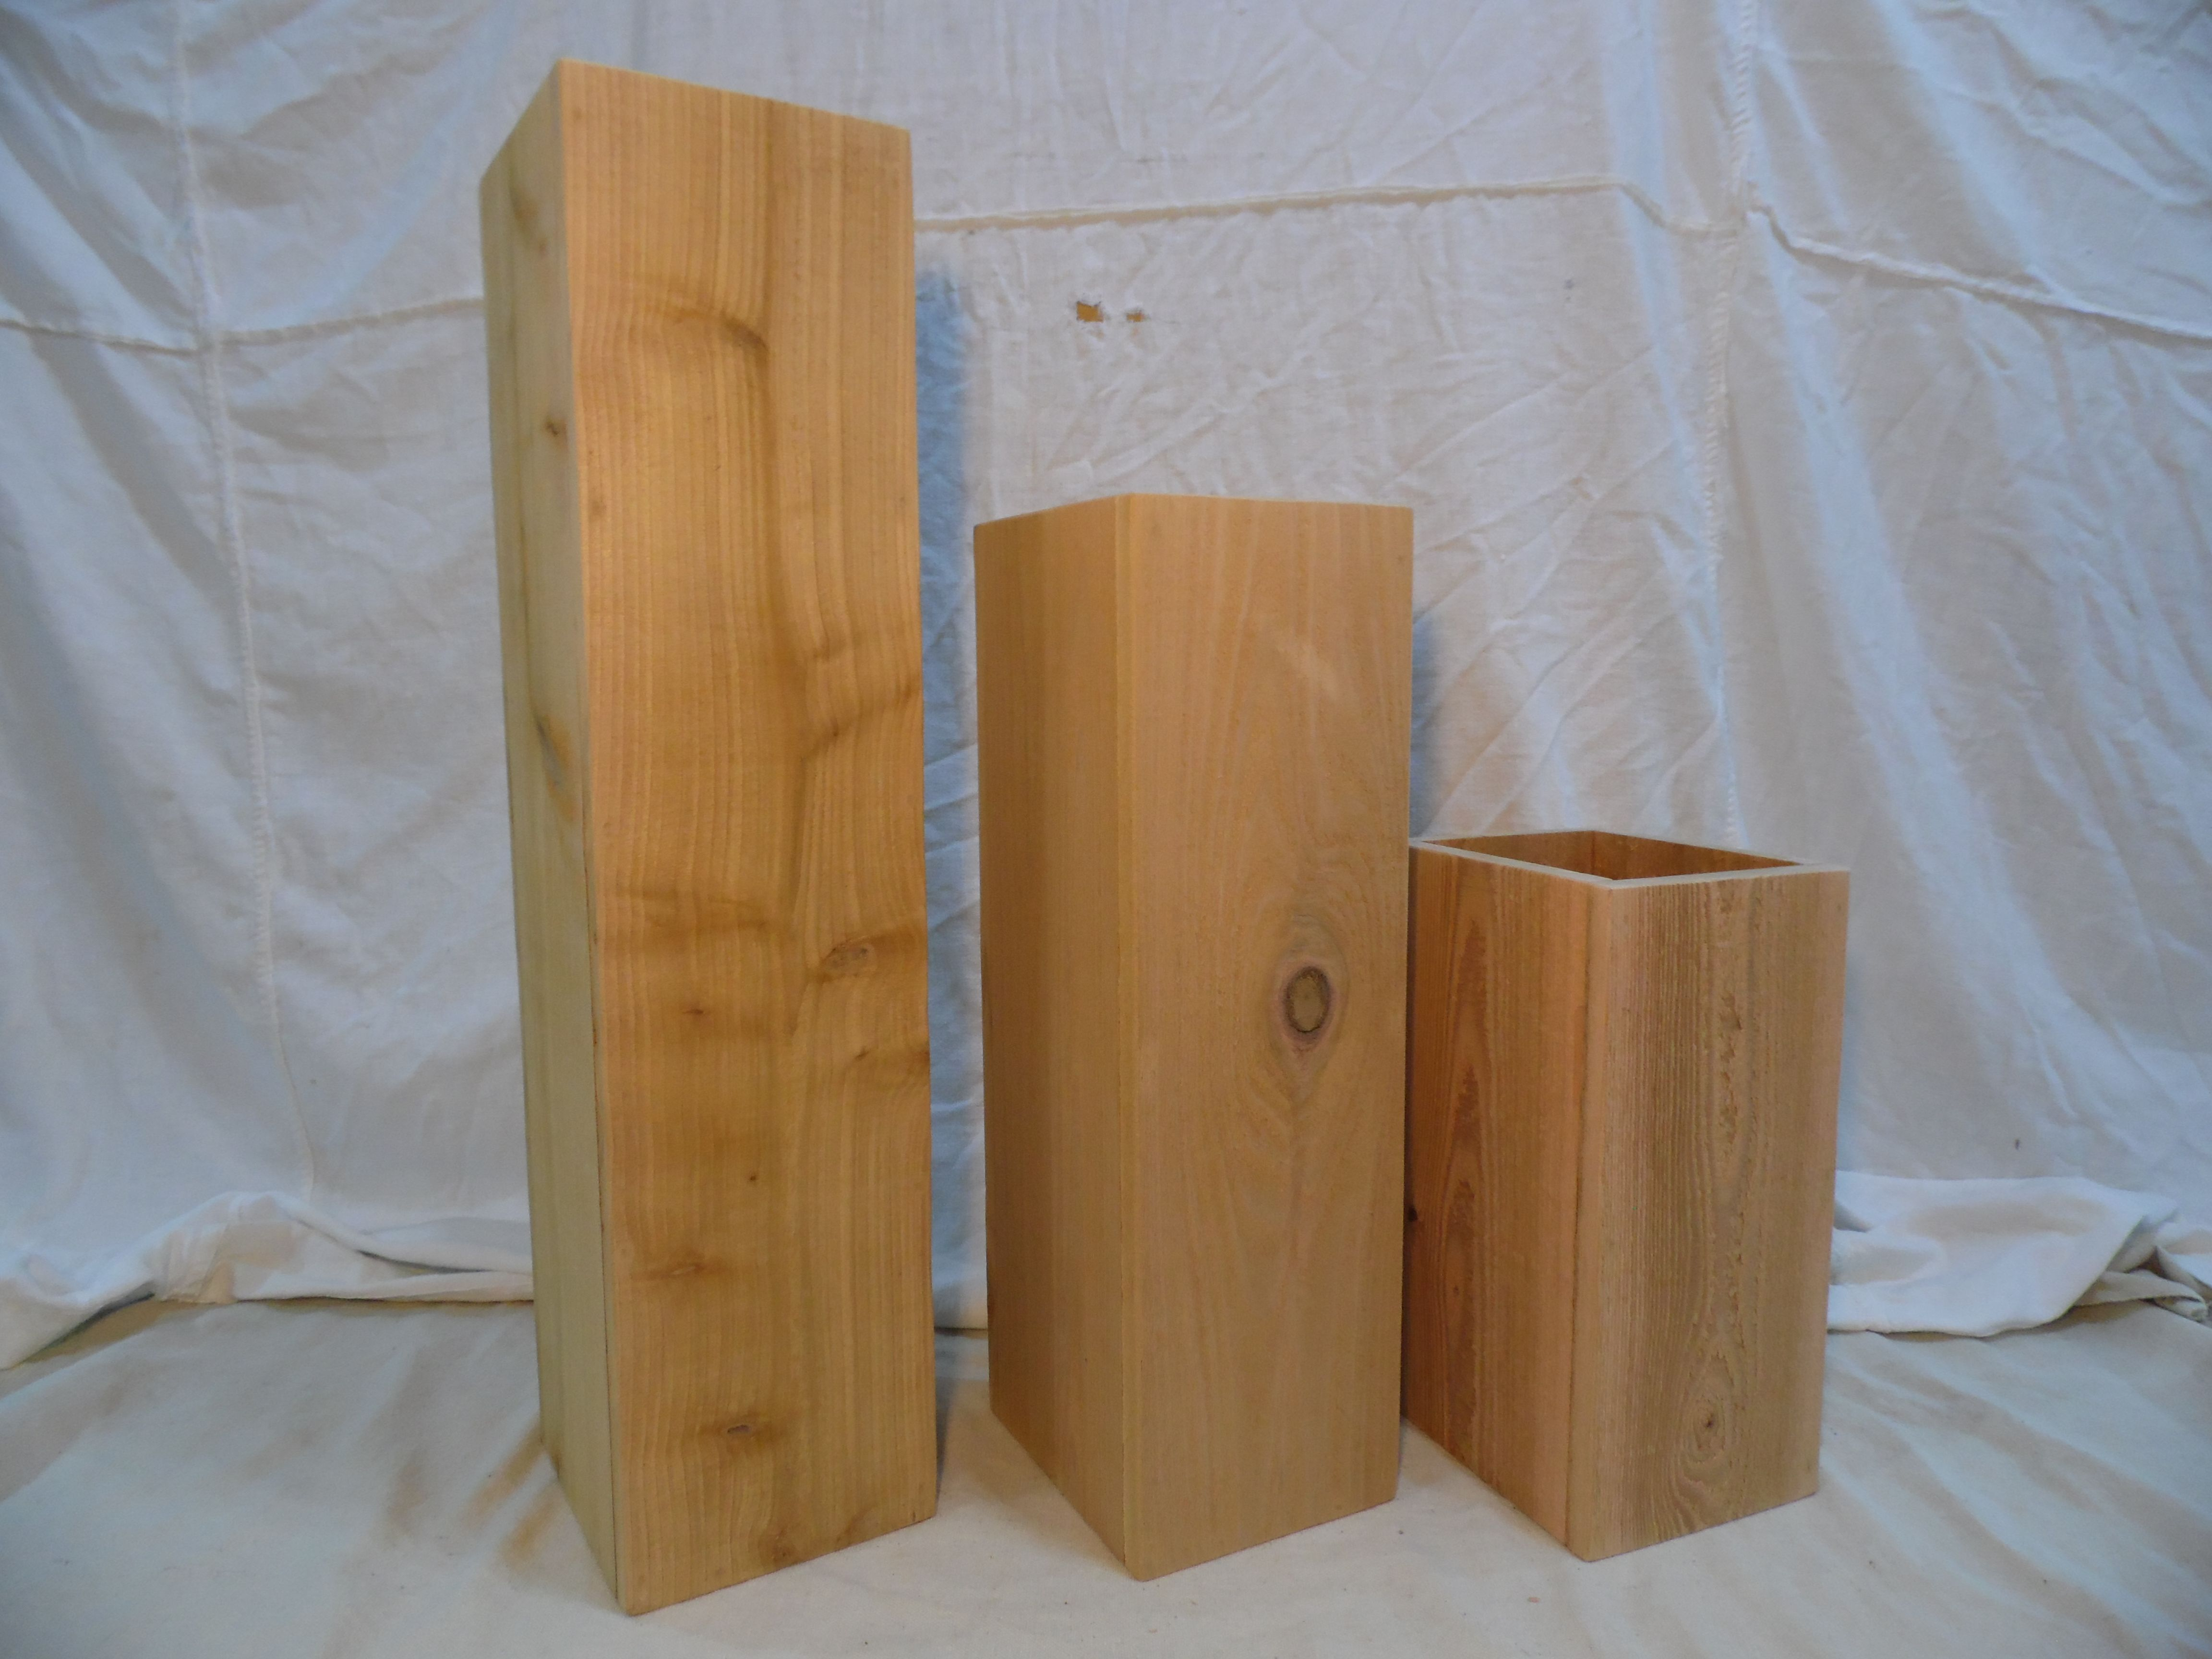 This Set Of 3 Large Cedar Floor Vases Will Work Great With Other Rustic Home Decor Perfect For Sticks Dried Grasses Or O Floor Vase Wooden Vase Rustic House